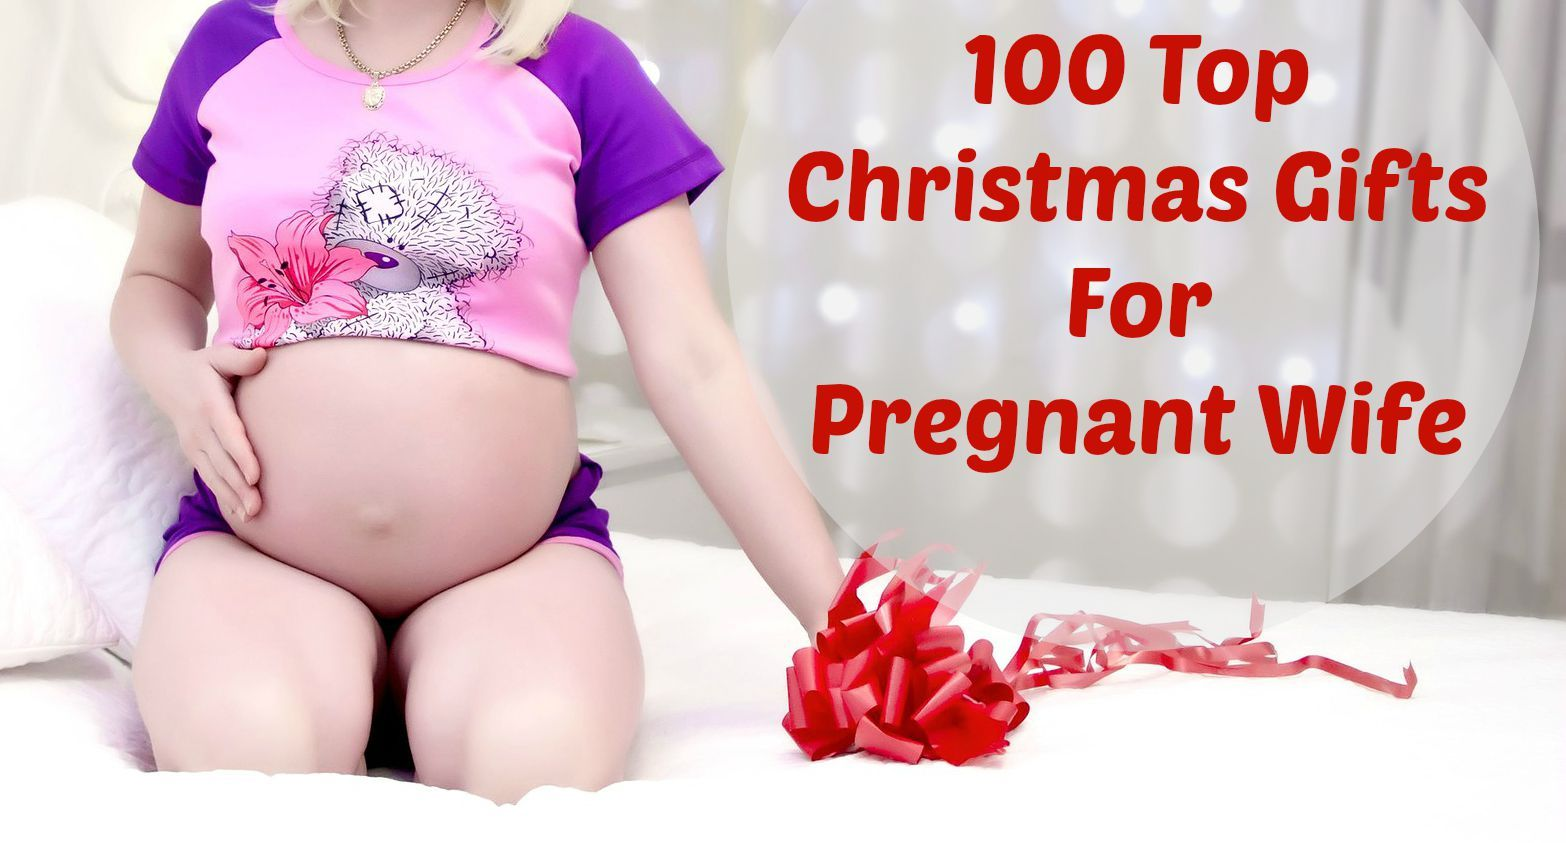 Wonderful Top Gifts For Wife Part - 7: Here You Will Find Only The Best Christmas Gifts For Pregnant Wife,  Gathered In The Course Of My Two Year Tracking On Best Ideas On This  Subject.